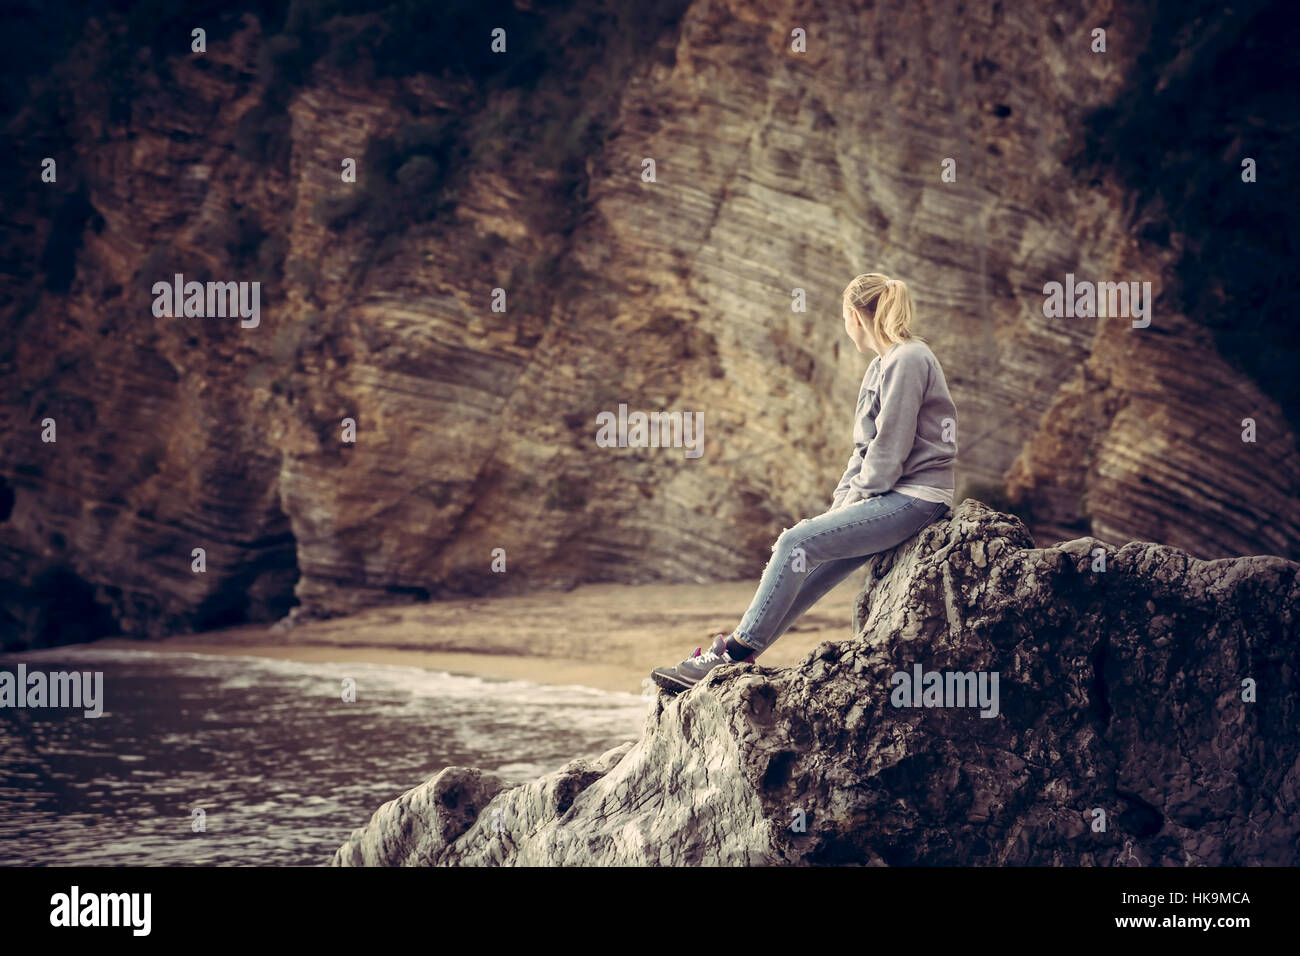 Pensive lonely woman traveler détente sur une grande falaise pierre sur la plage en regardant le paysage de Photo Stock